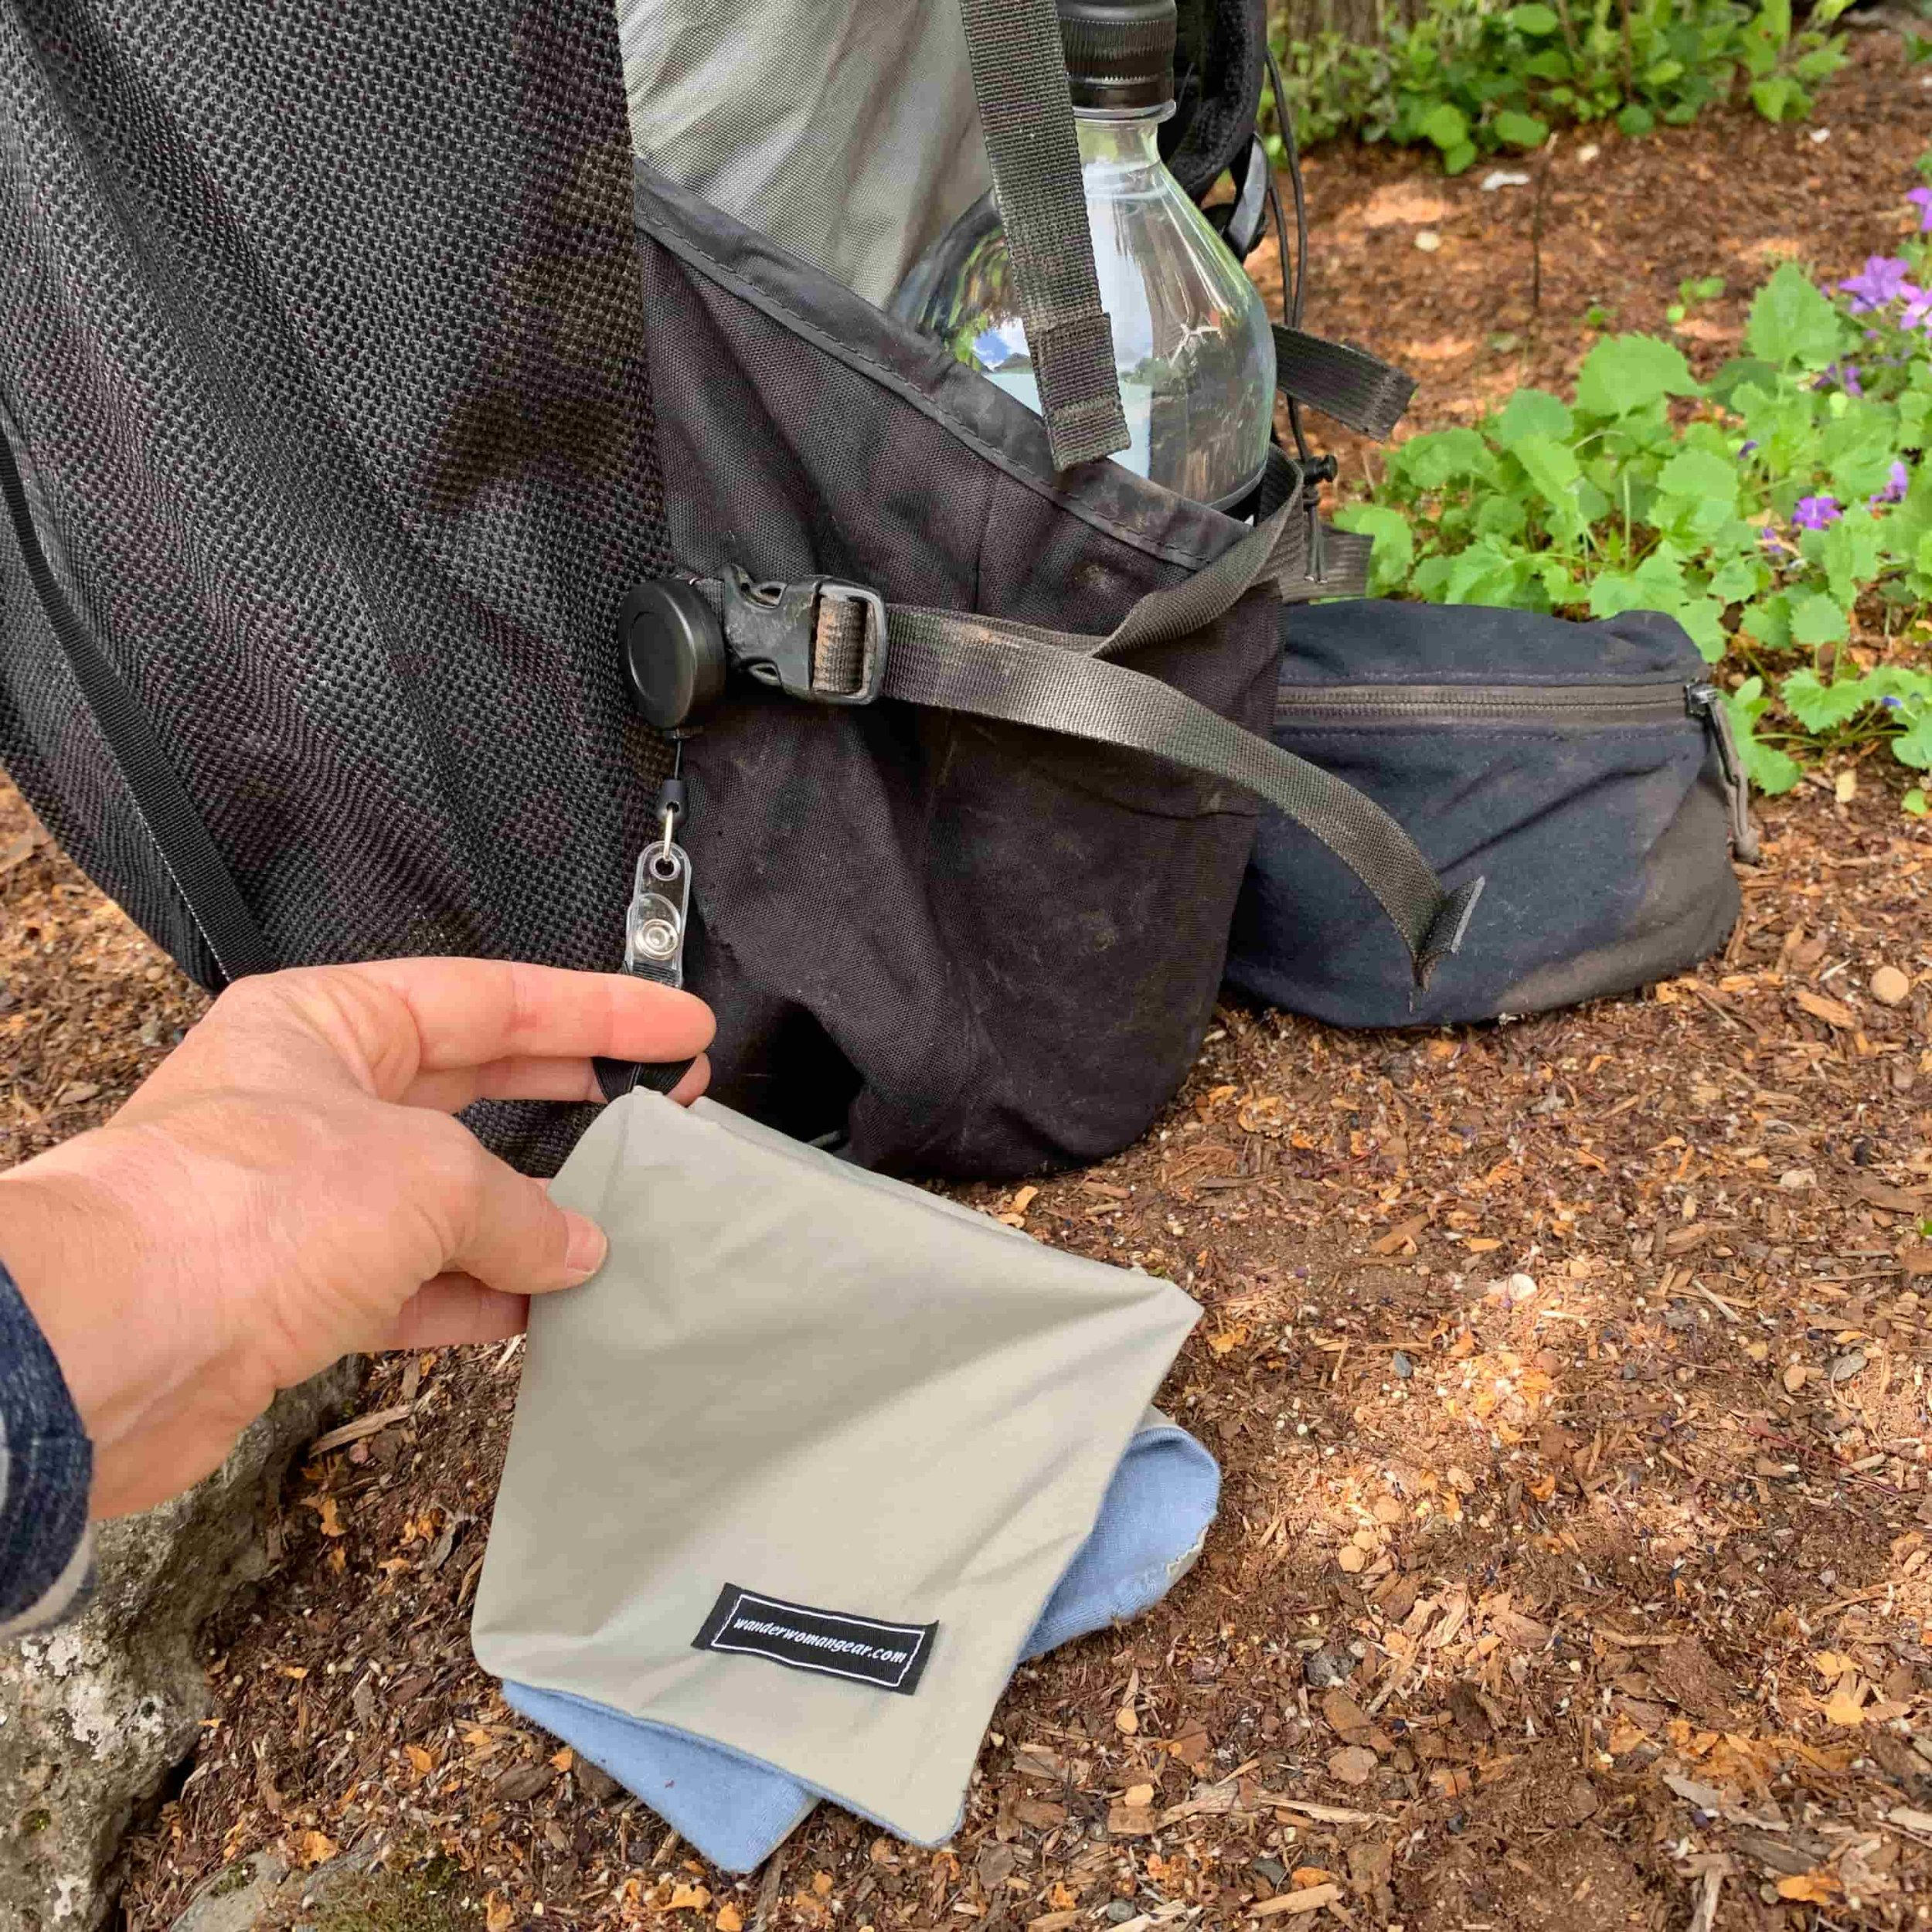 The Wander Woman Gear waterproof wipe attached to a pack. Photo courtesy Naomi Hudetz